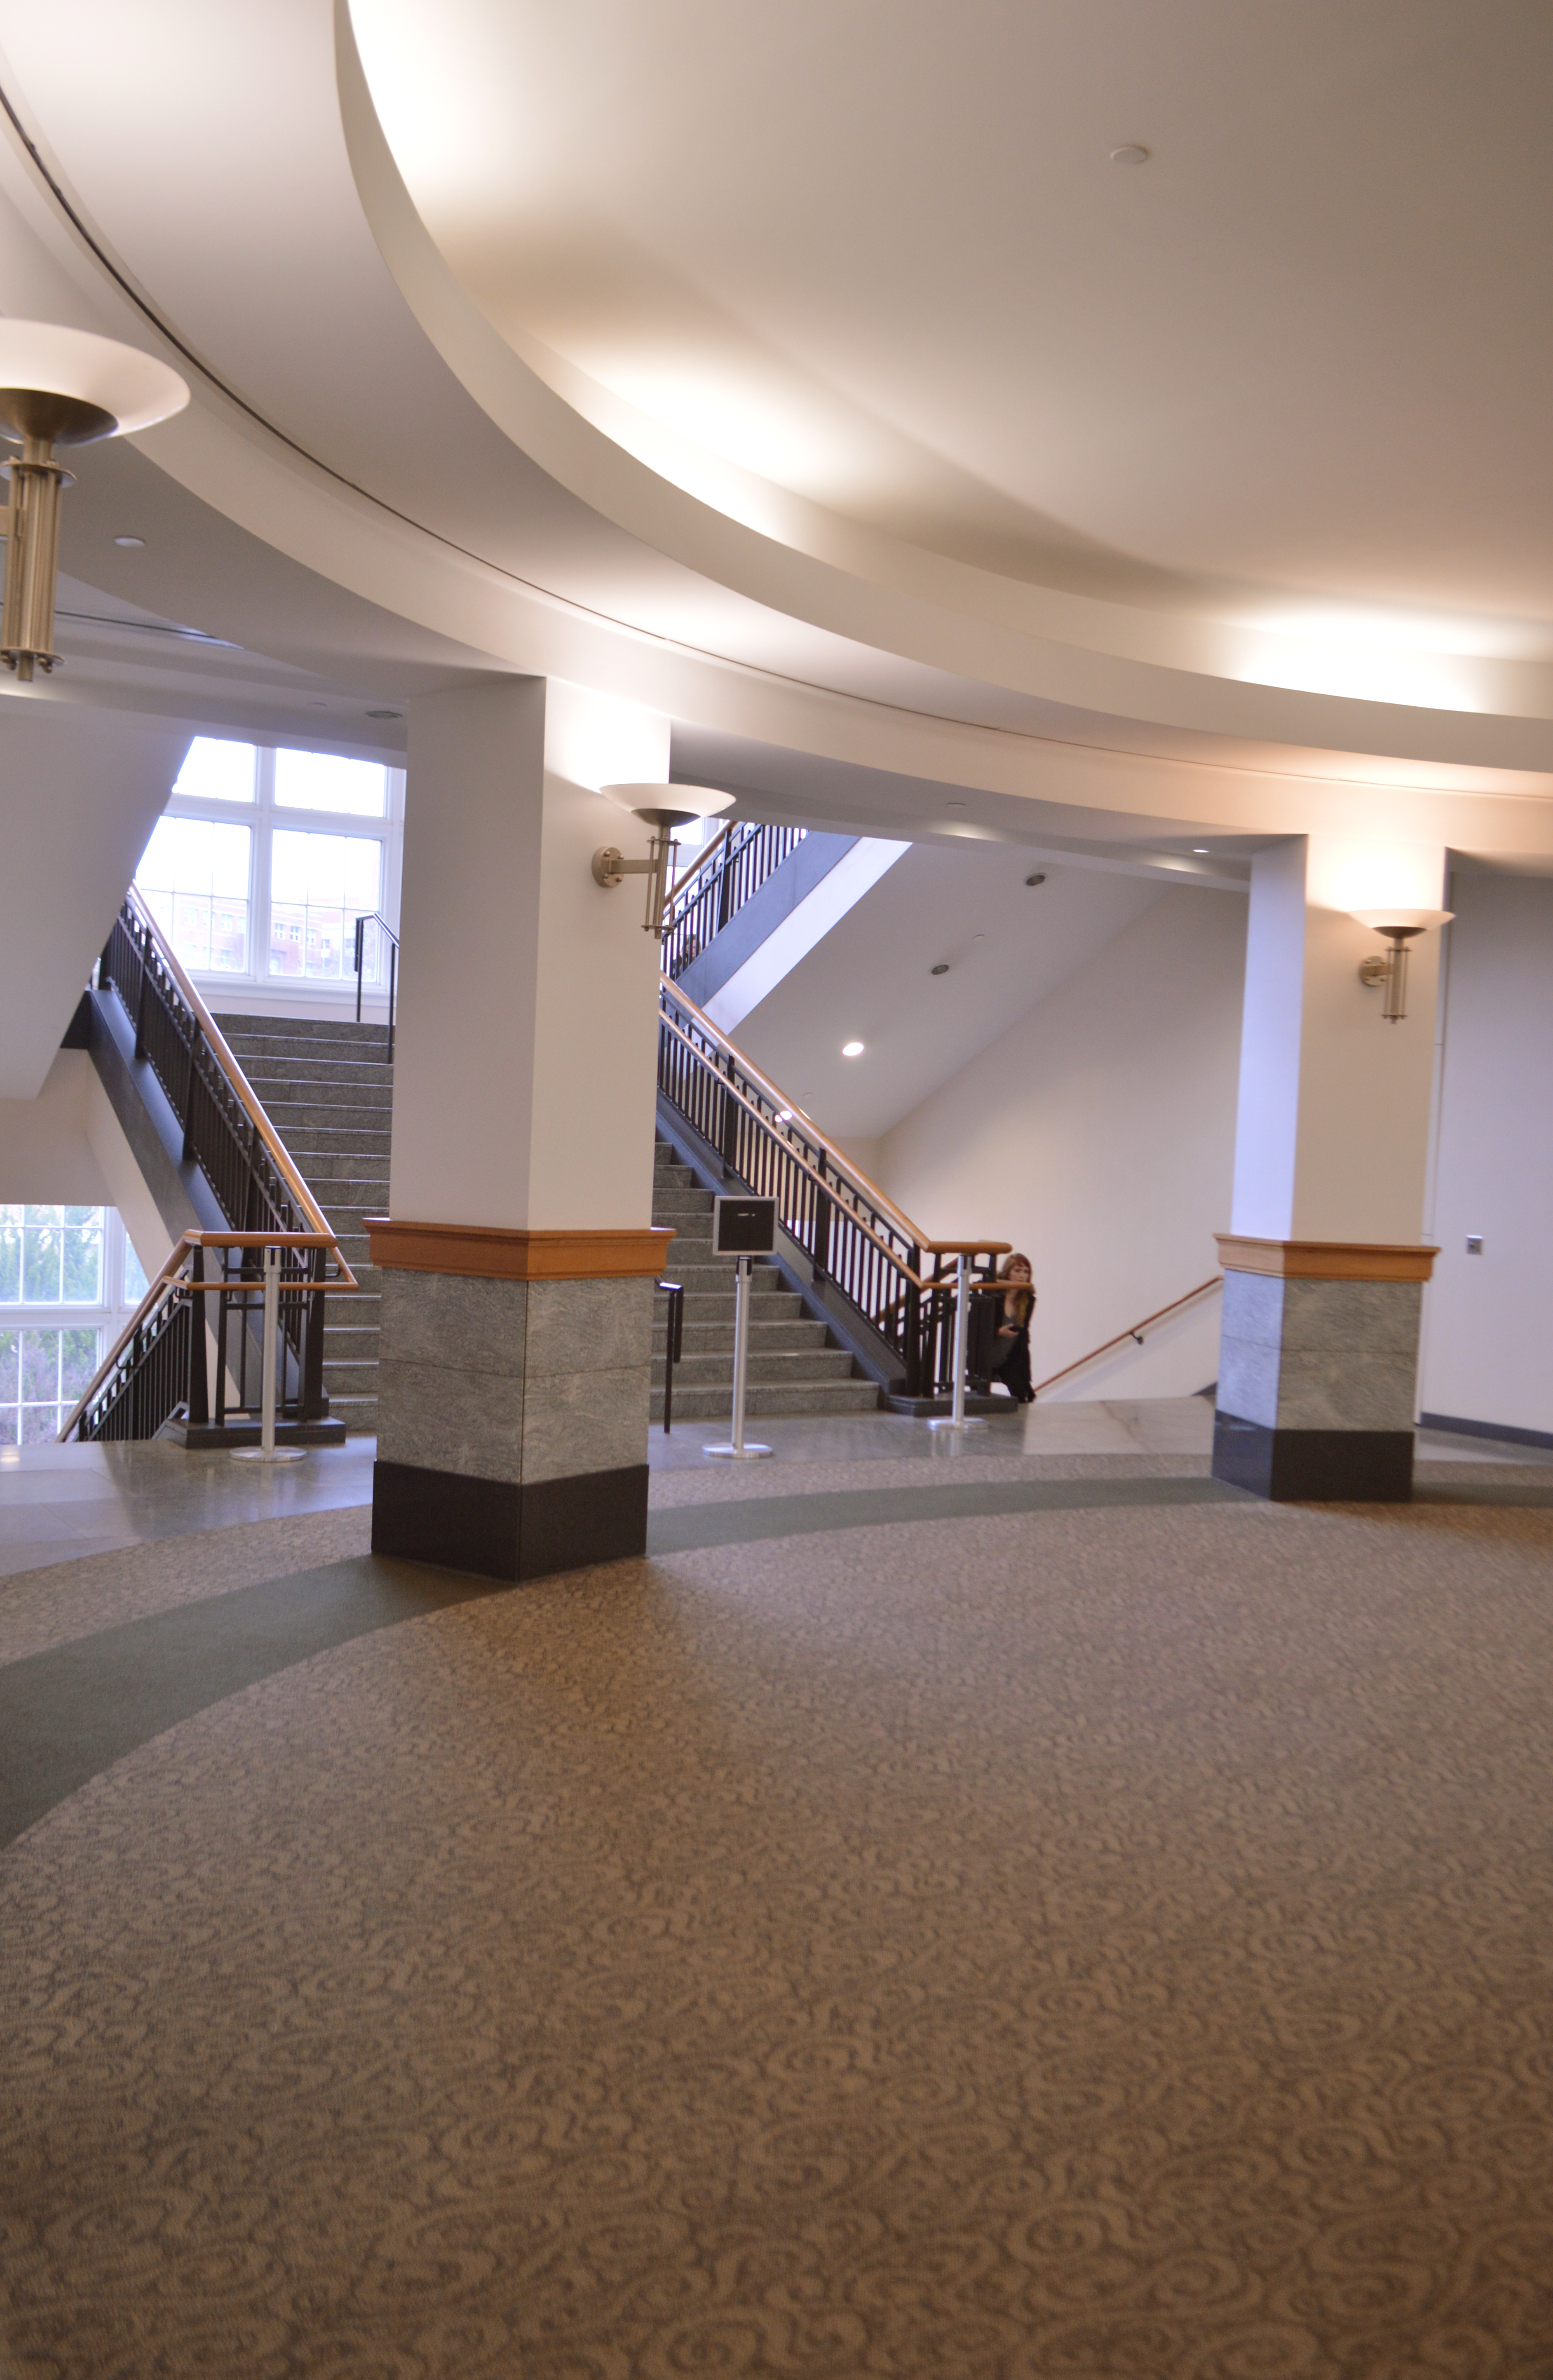 3rd floor rotunda and staircase